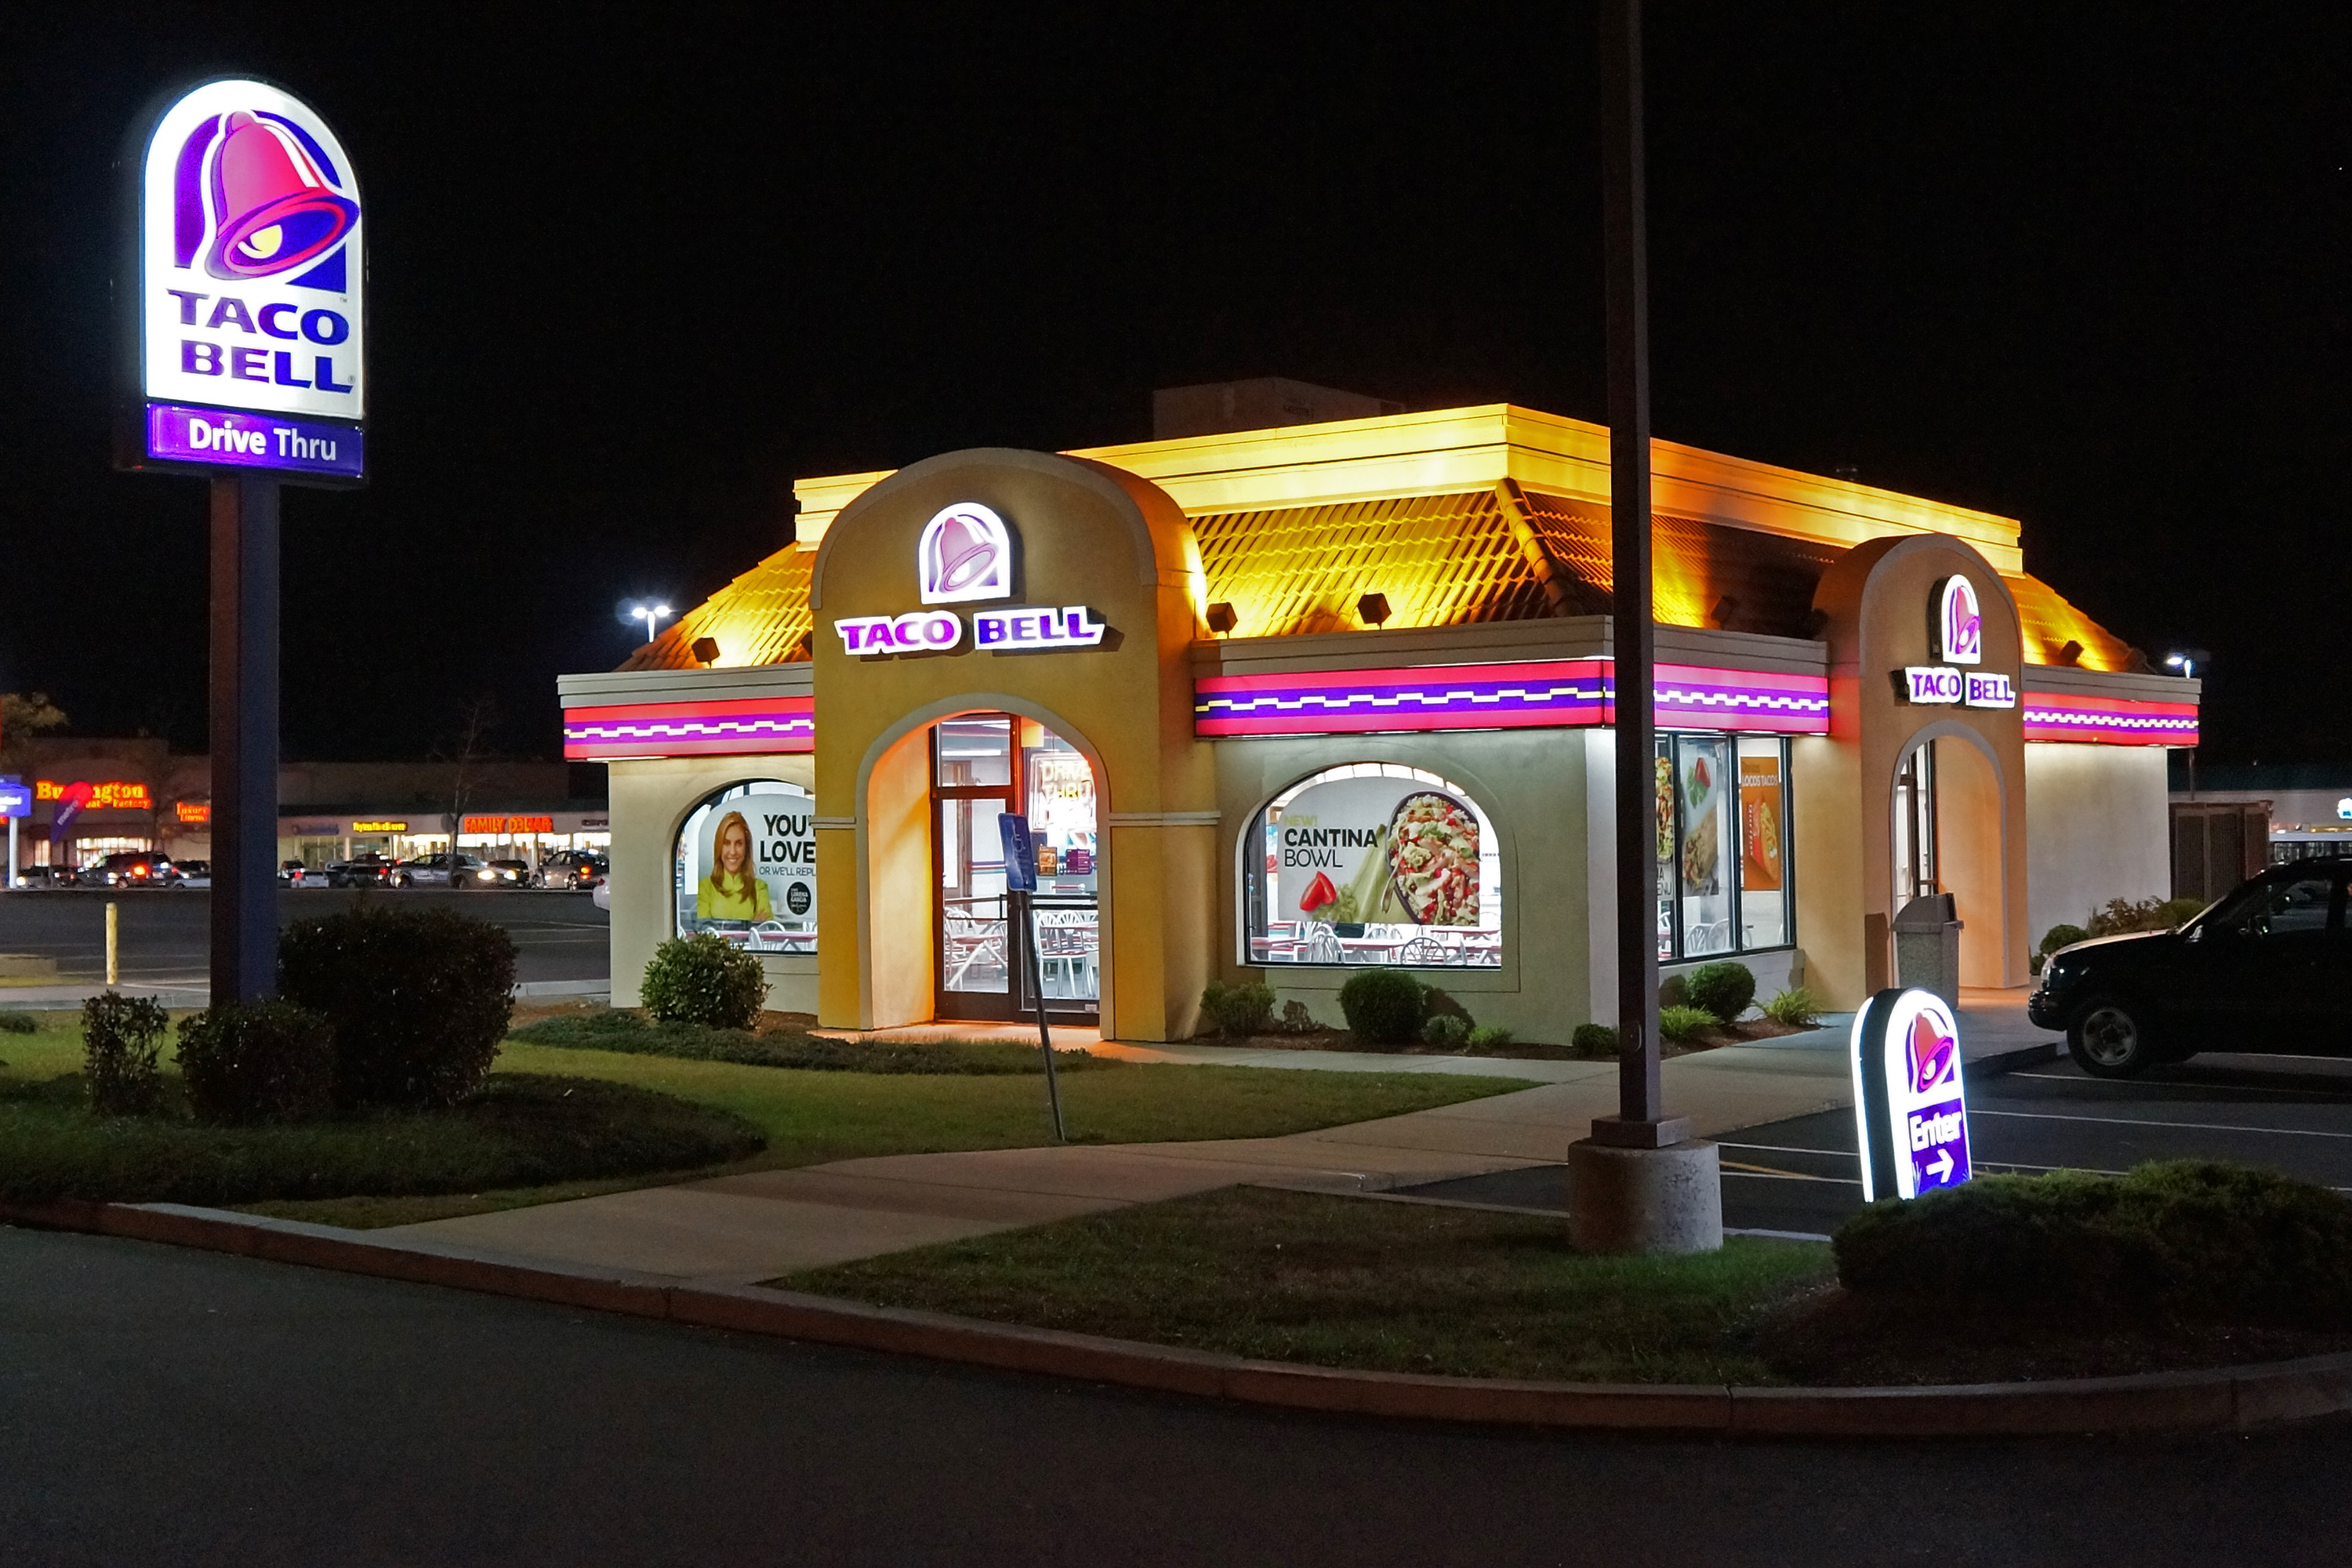 http://upload.wikimedia.org/wikipedia/commons/b/b8/Taco_Bell_Night.JPG